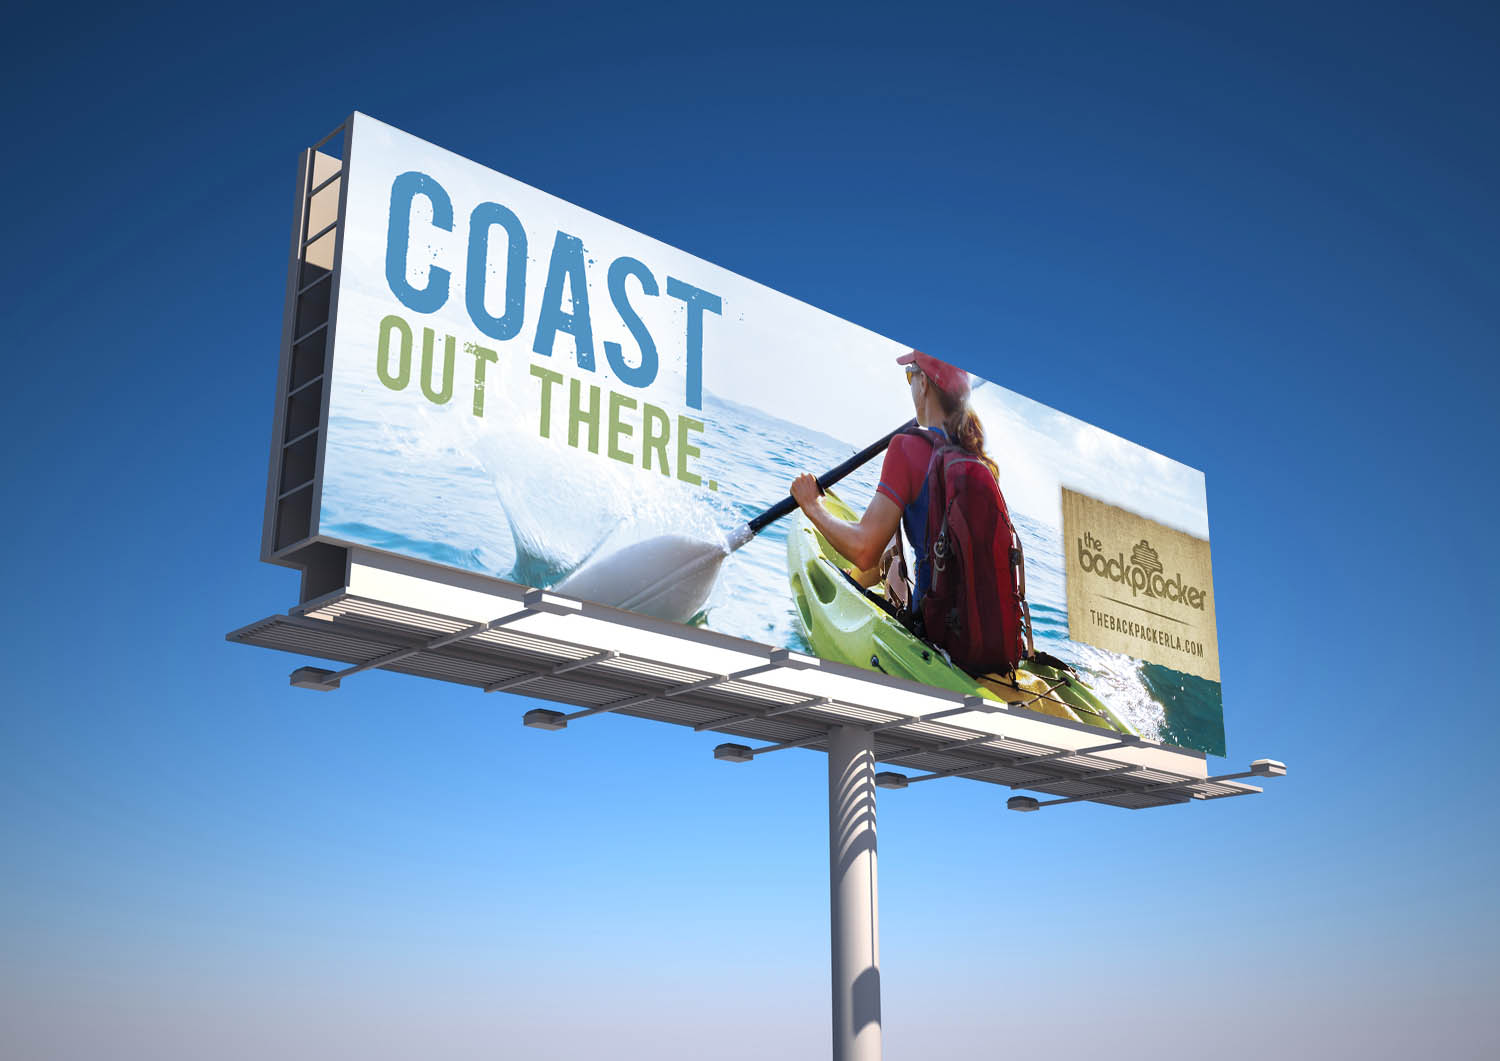 BCK: Billboard Mockup — Coast Out There